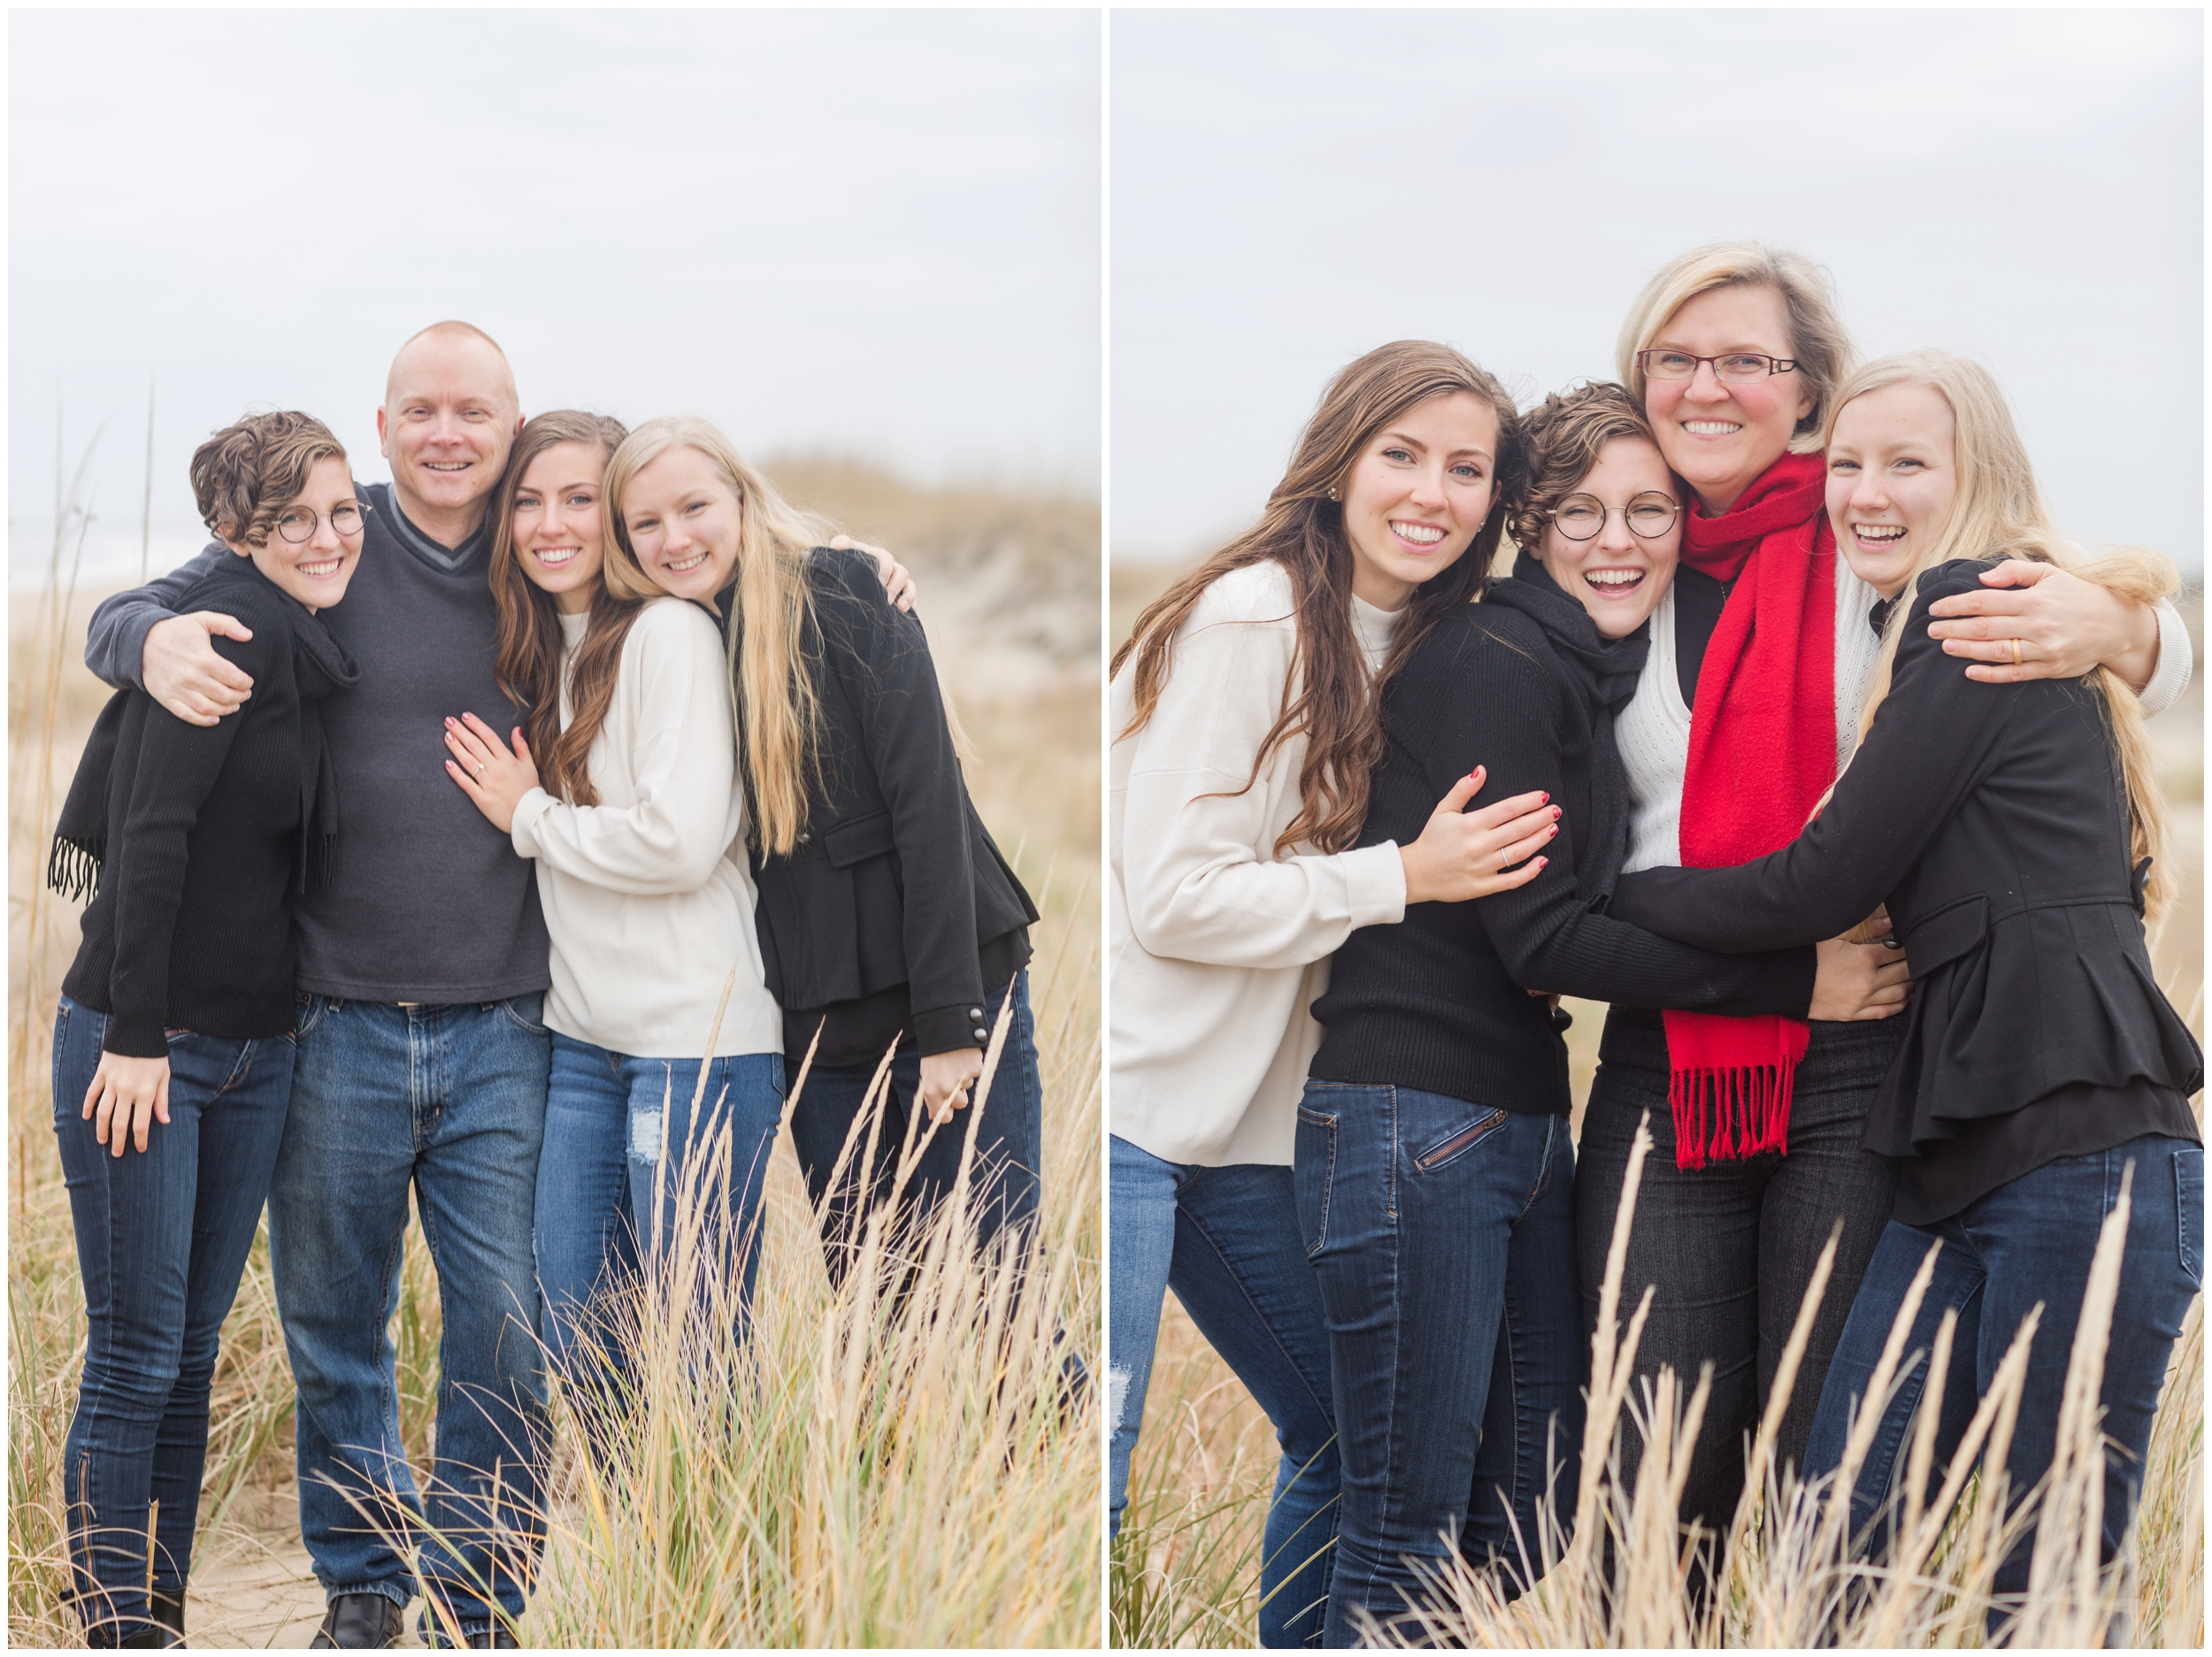 elovephotos virginia beach sandbridge family photography session